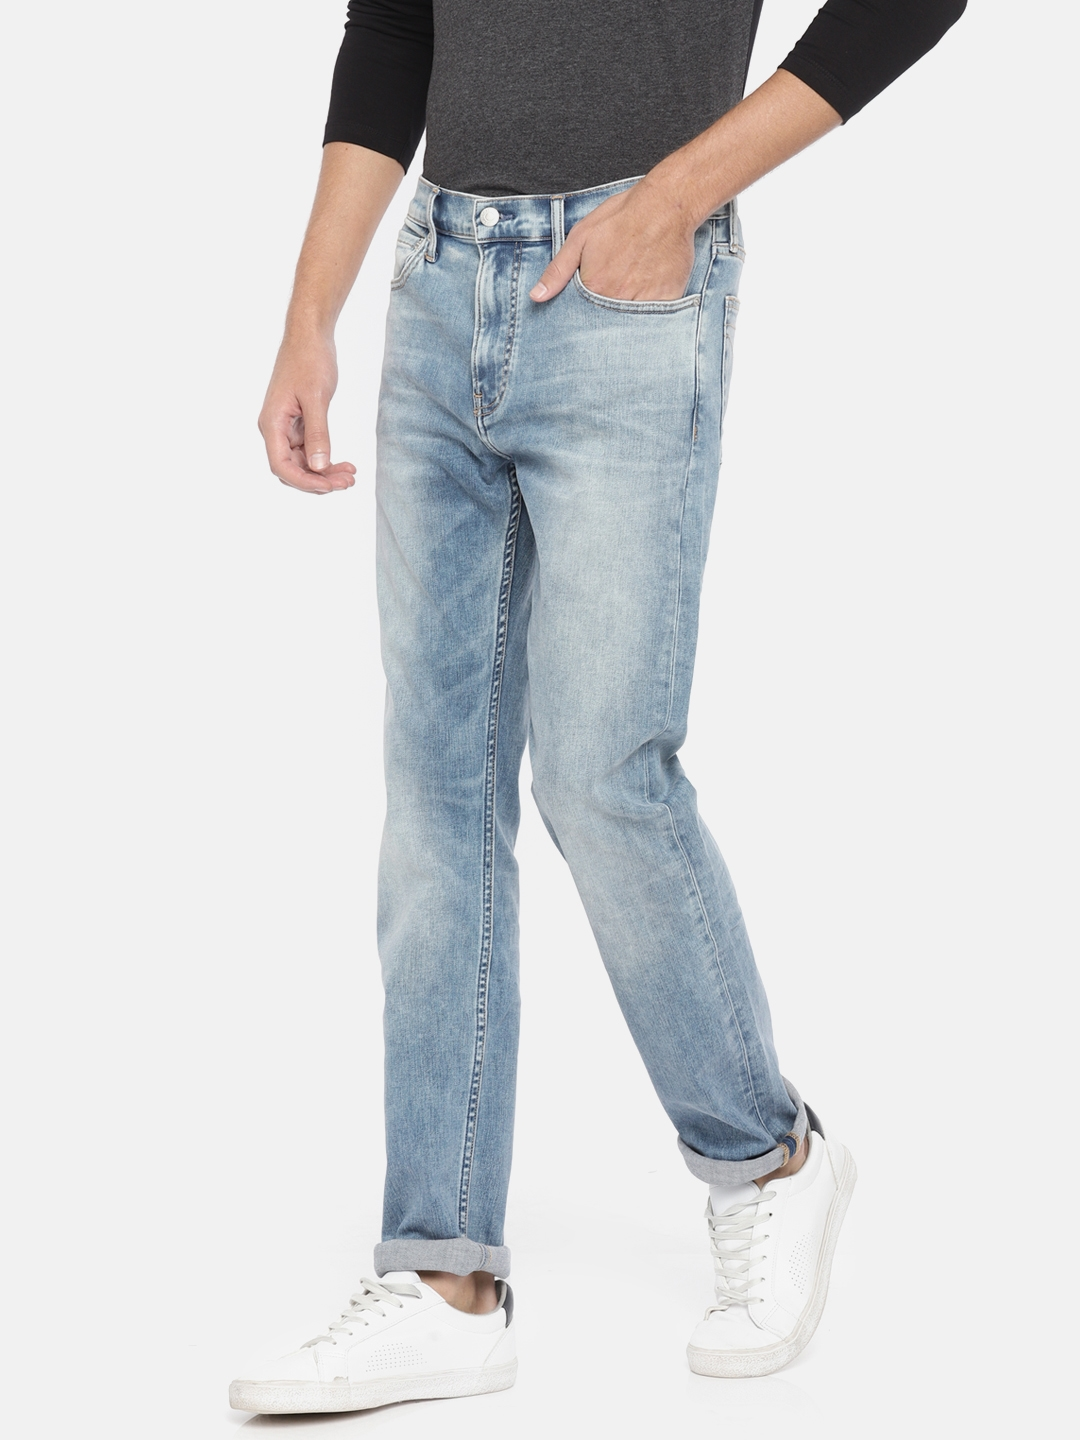 51ef4171 Buy Calvin Klein Jeans Men Blue Slim Fit Mid Rise Clean Look Stretchable  Jeans - Jeans for Men 7766785 | Myntra